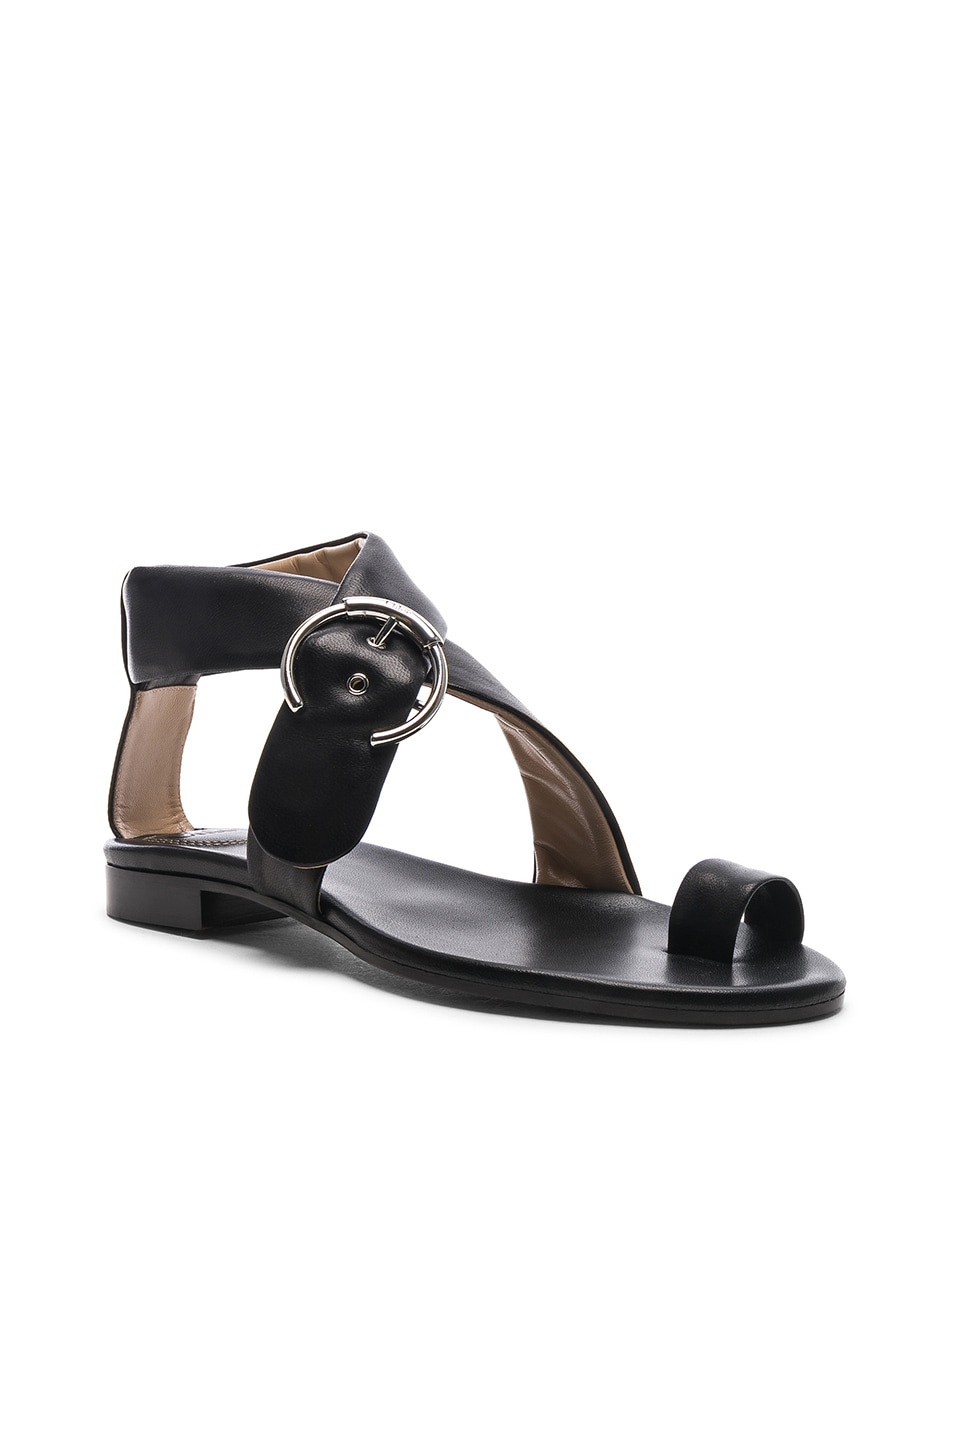 Image 2 of Chloe Two Strap Sandals in Black